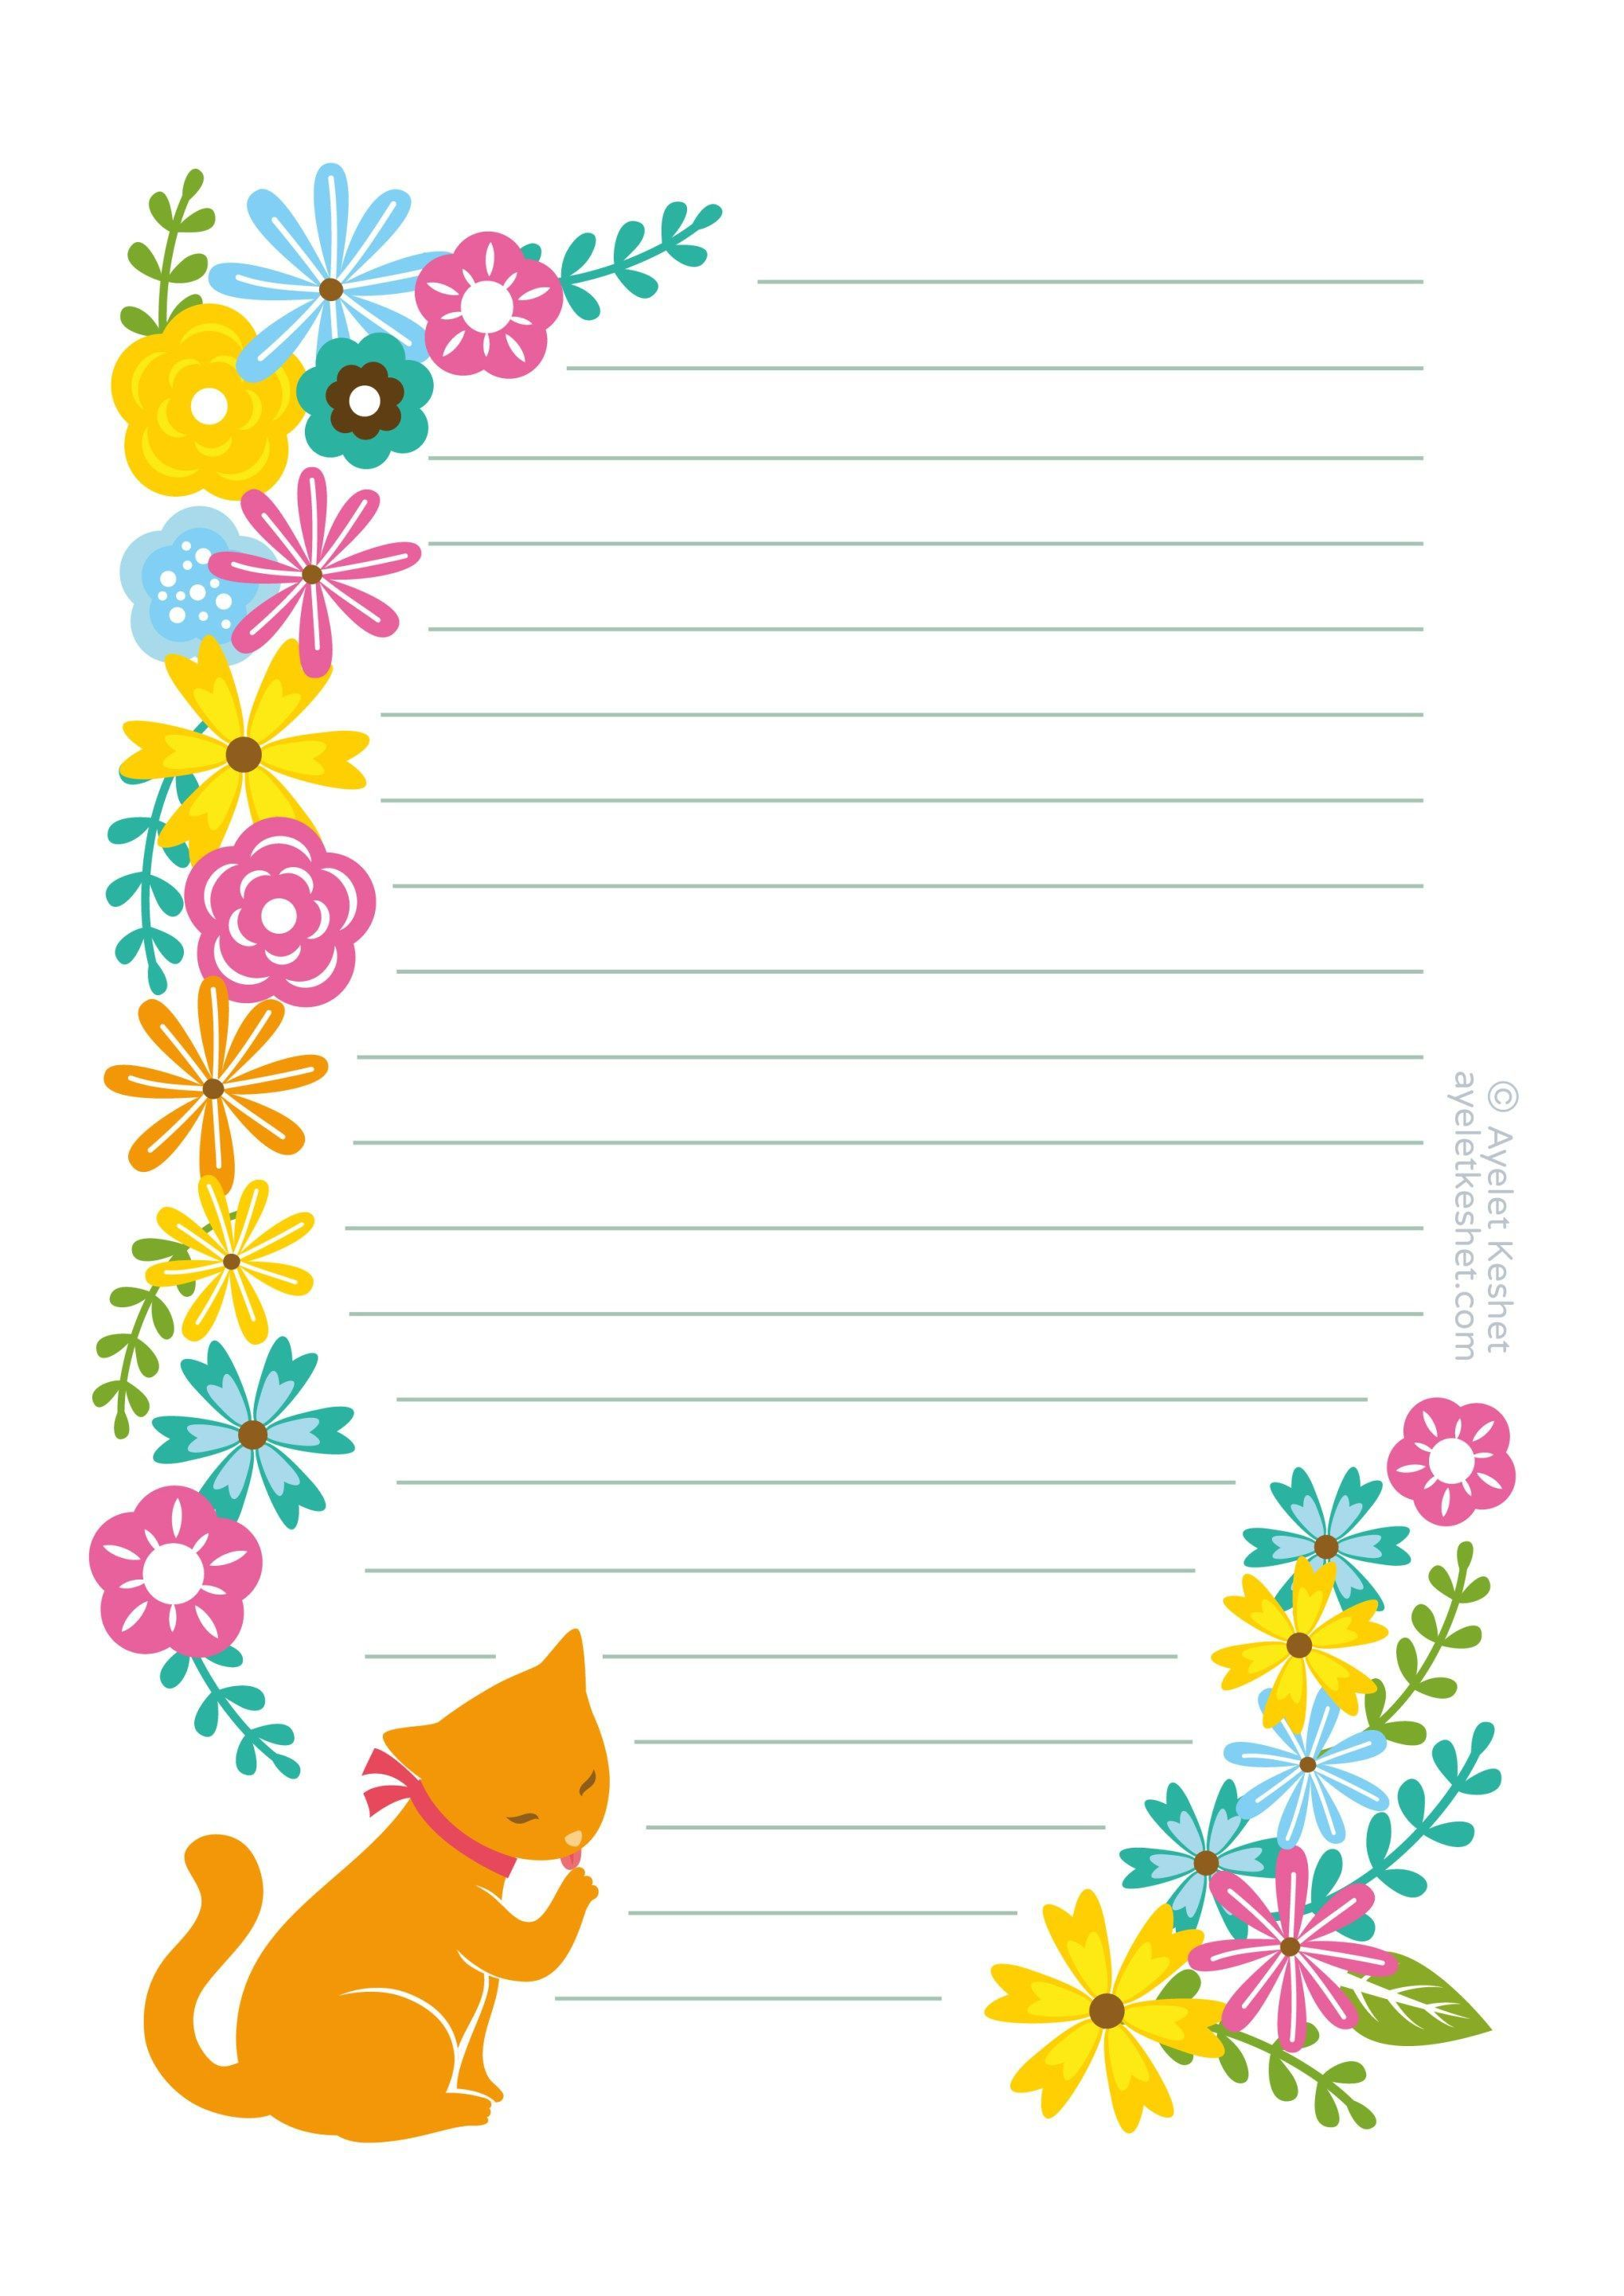 008 Unique Free Printable Stationery Paper Template Highest Clarity  TemplatesFull